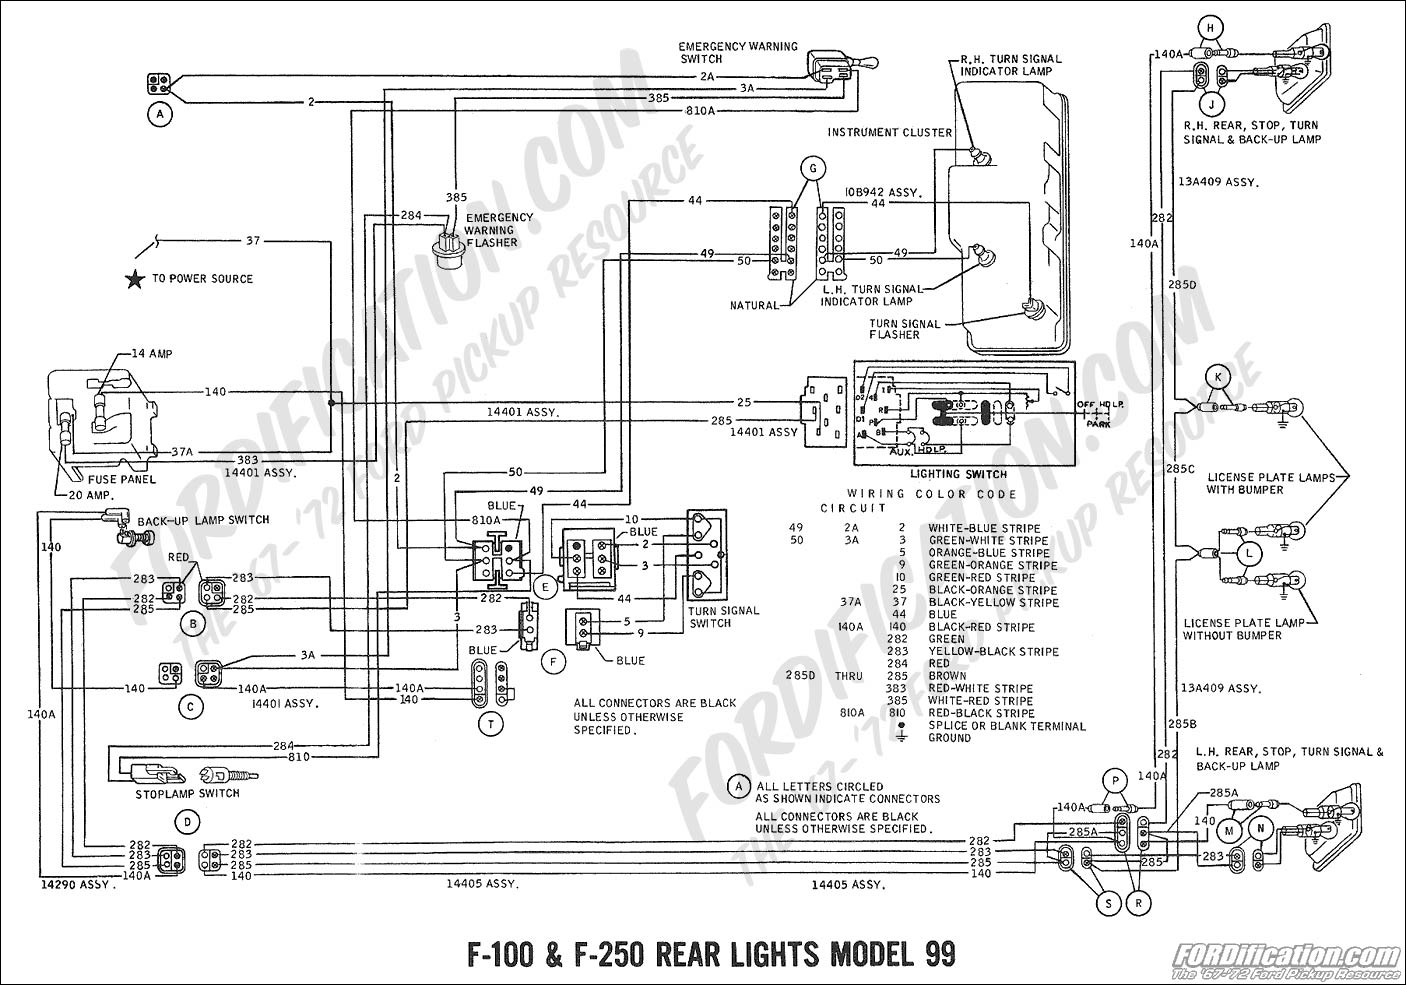 833313 Shift Indicator Light Wiring likewise After Market Gem Wiring Harness in addition 6j014 Ford 350 2008 350 Will Not Park moreover 350 Motor Diagram together with Electrical Wiring Diagrams For Mey 285. on 2005 ford f150 tail light wiring diagram html